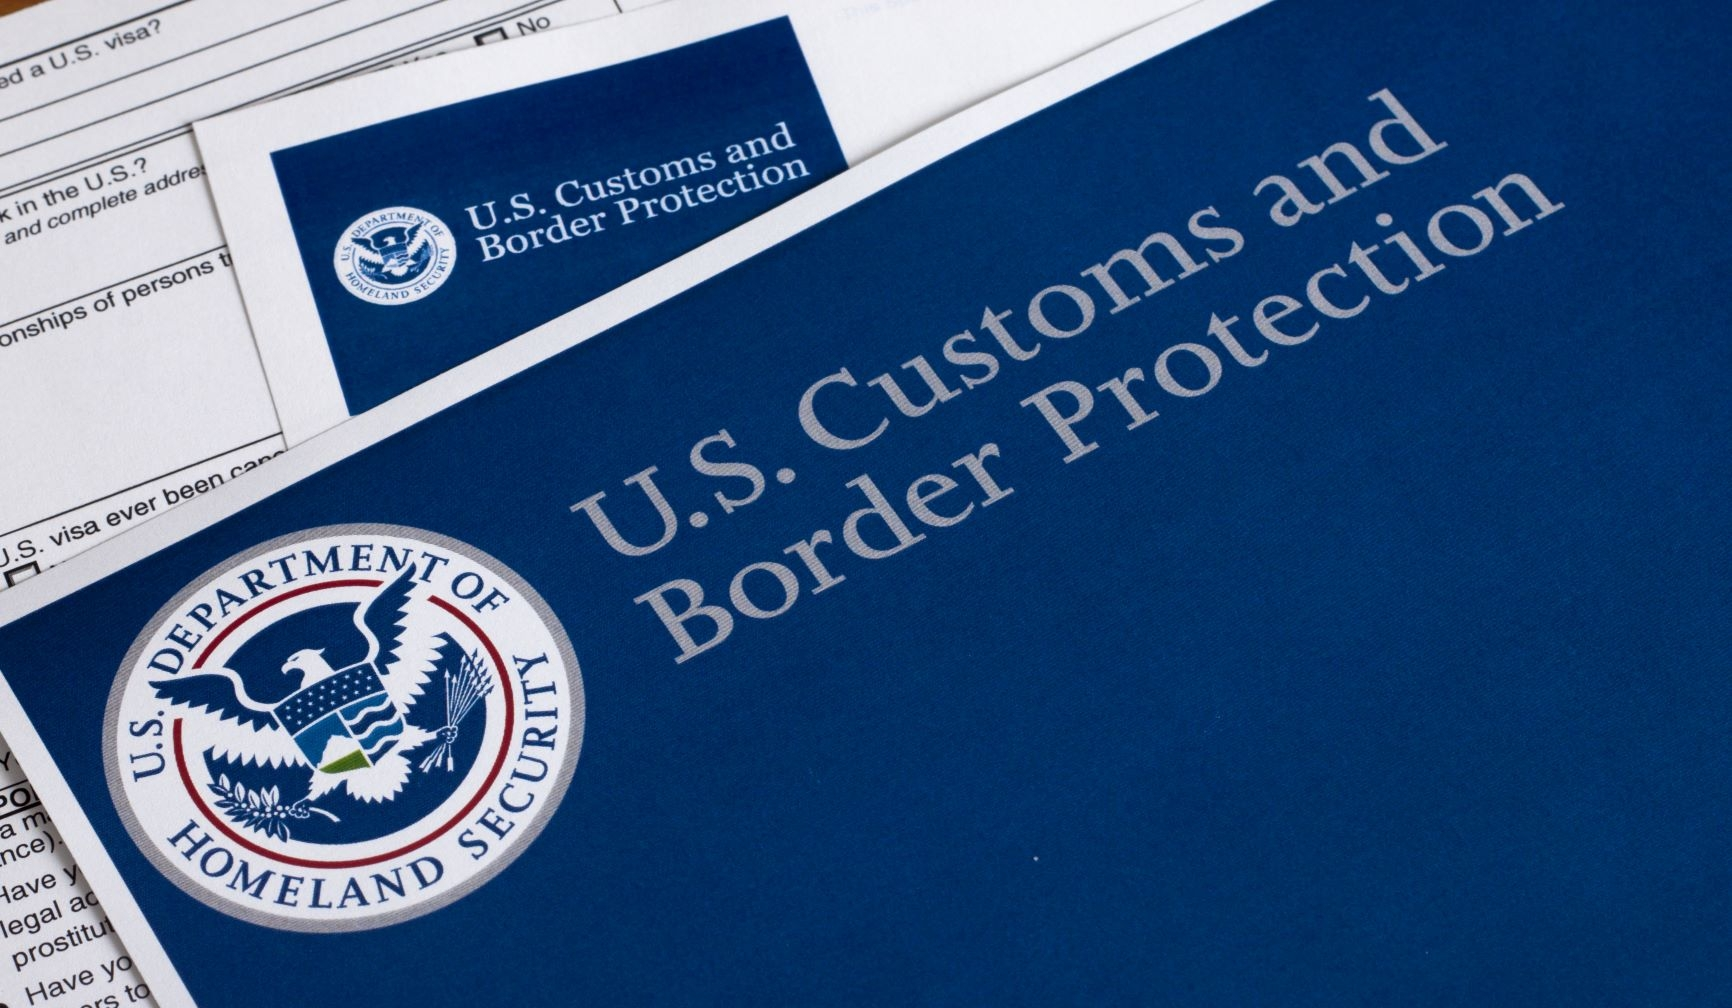 US Customs and Border Protection document